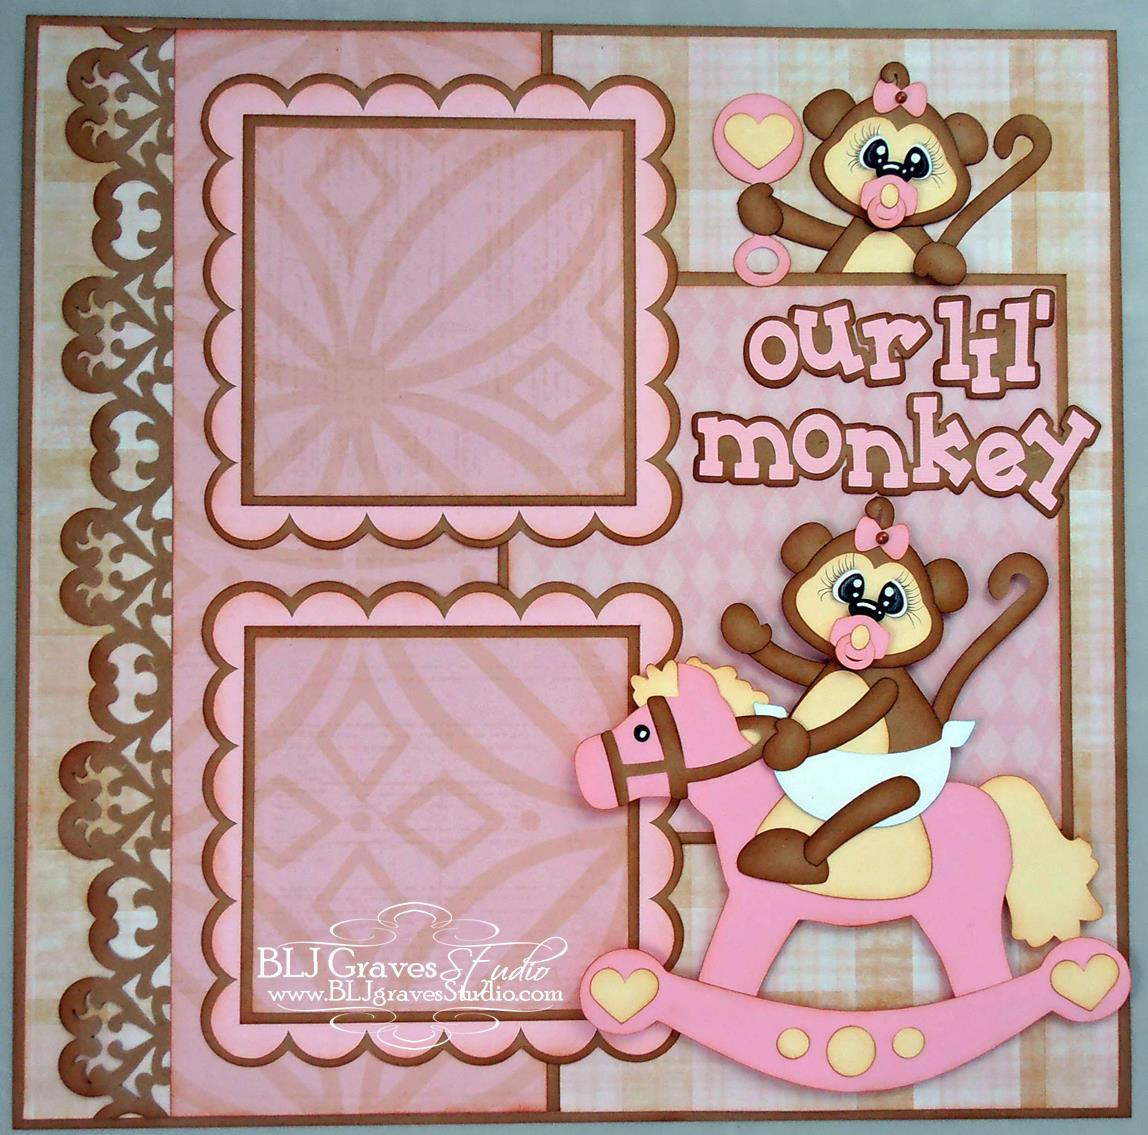 How to scrapbook for baby girl - I Used The Lil Monkey Girl Cutting File From Designs On Cloud 9 For This Scrapbook Page